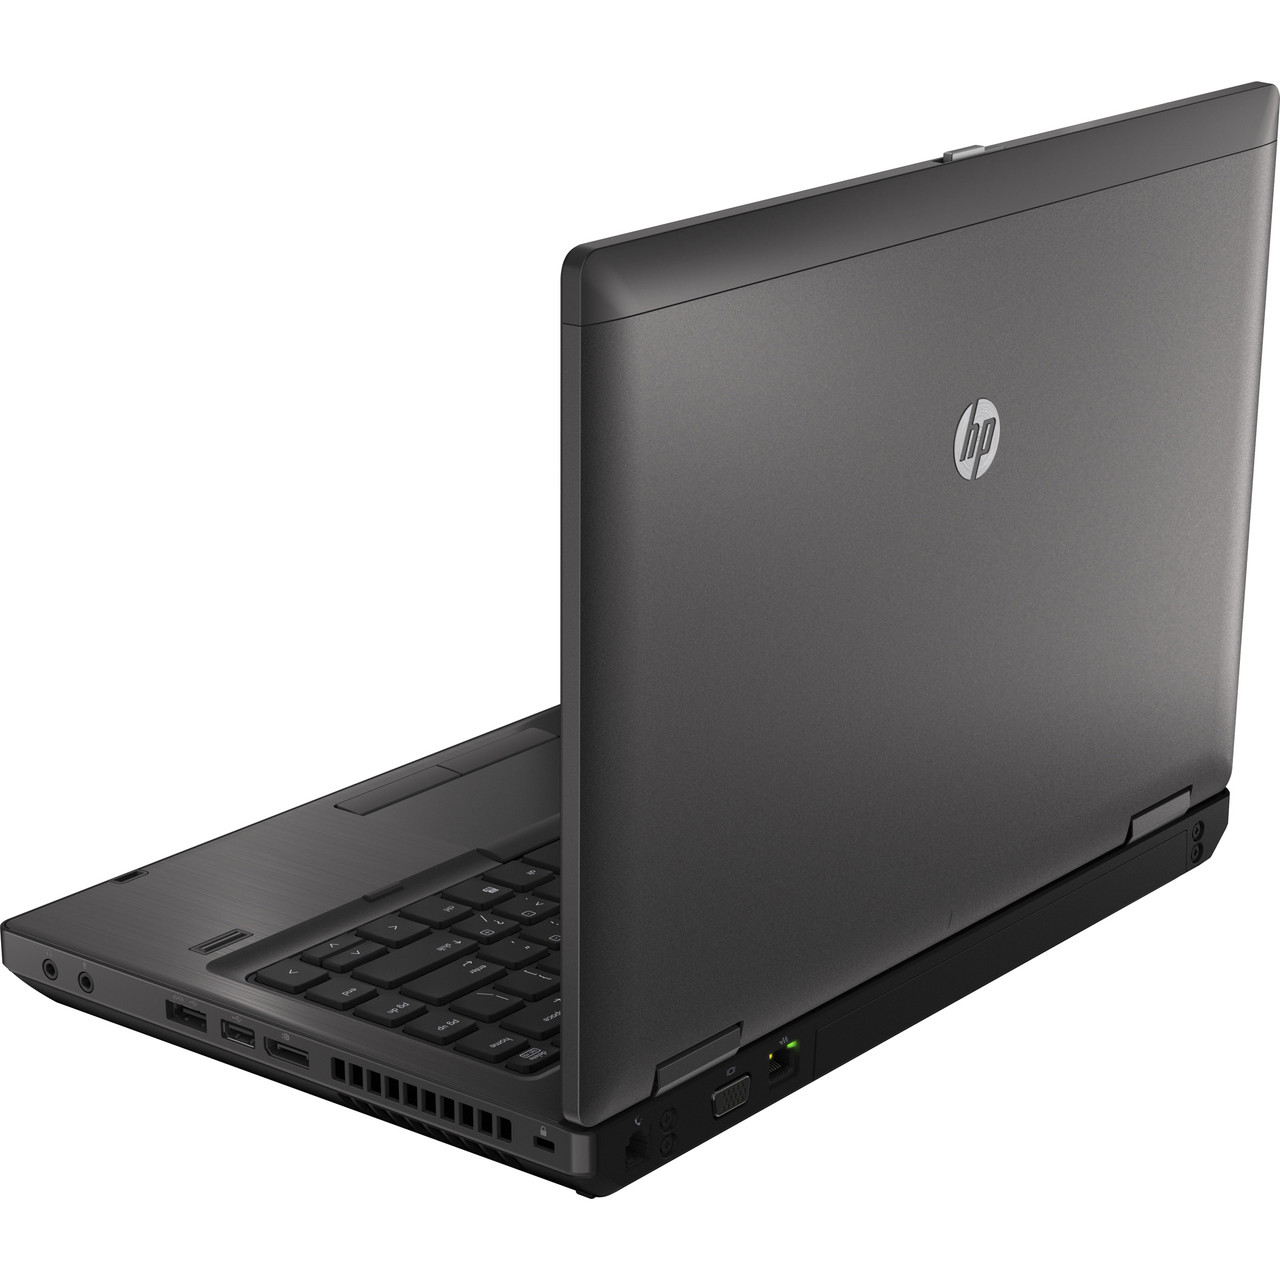 HP Compaq Probook 6470b Laptop Core i7 2.9GHz, 8GB Ram, 250GB SSD, DVD-RW, Windows 10 Pro 64 Notebook